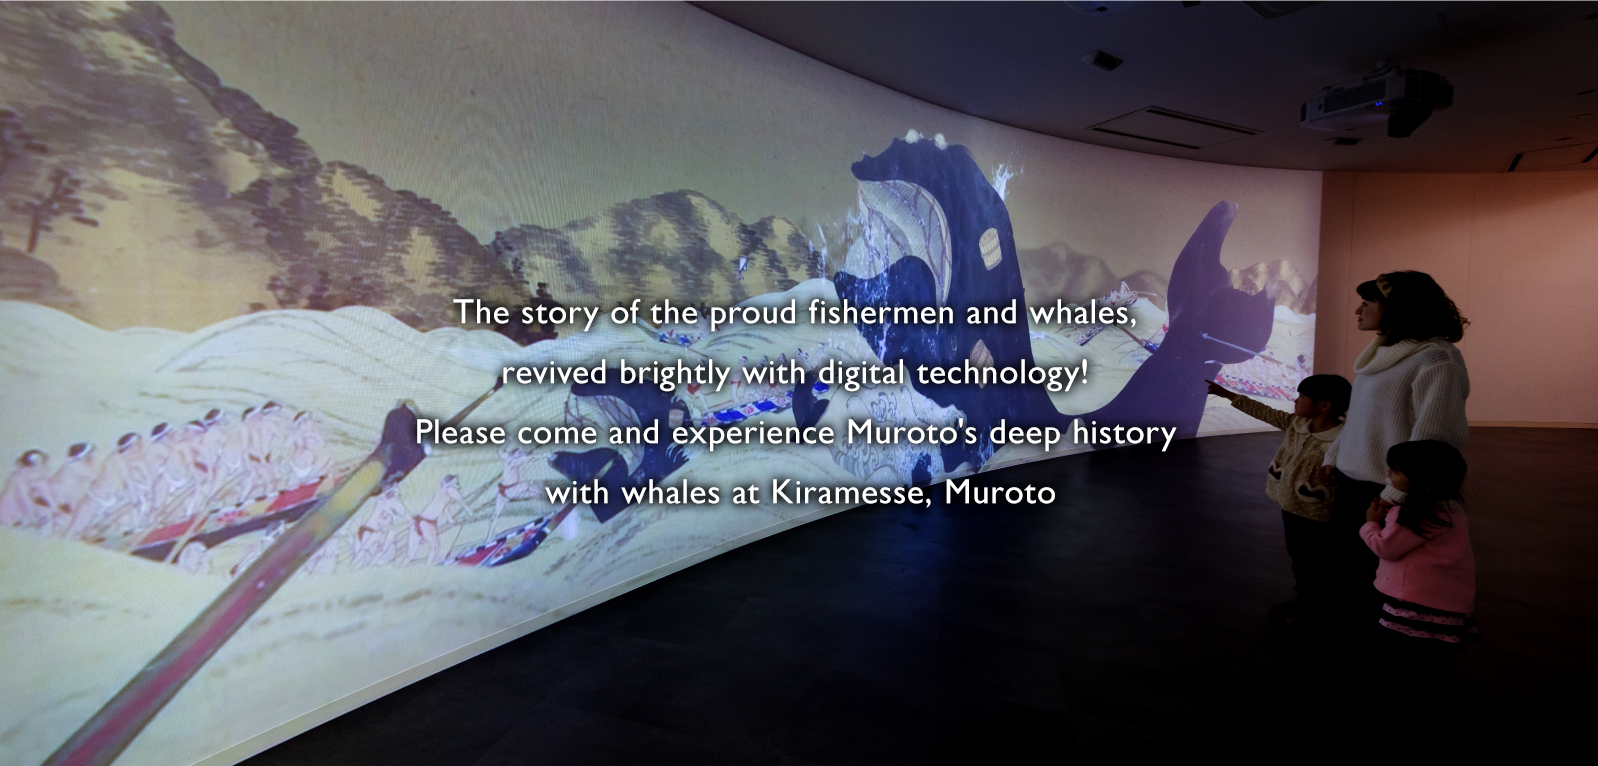 History of Muroto and a whale